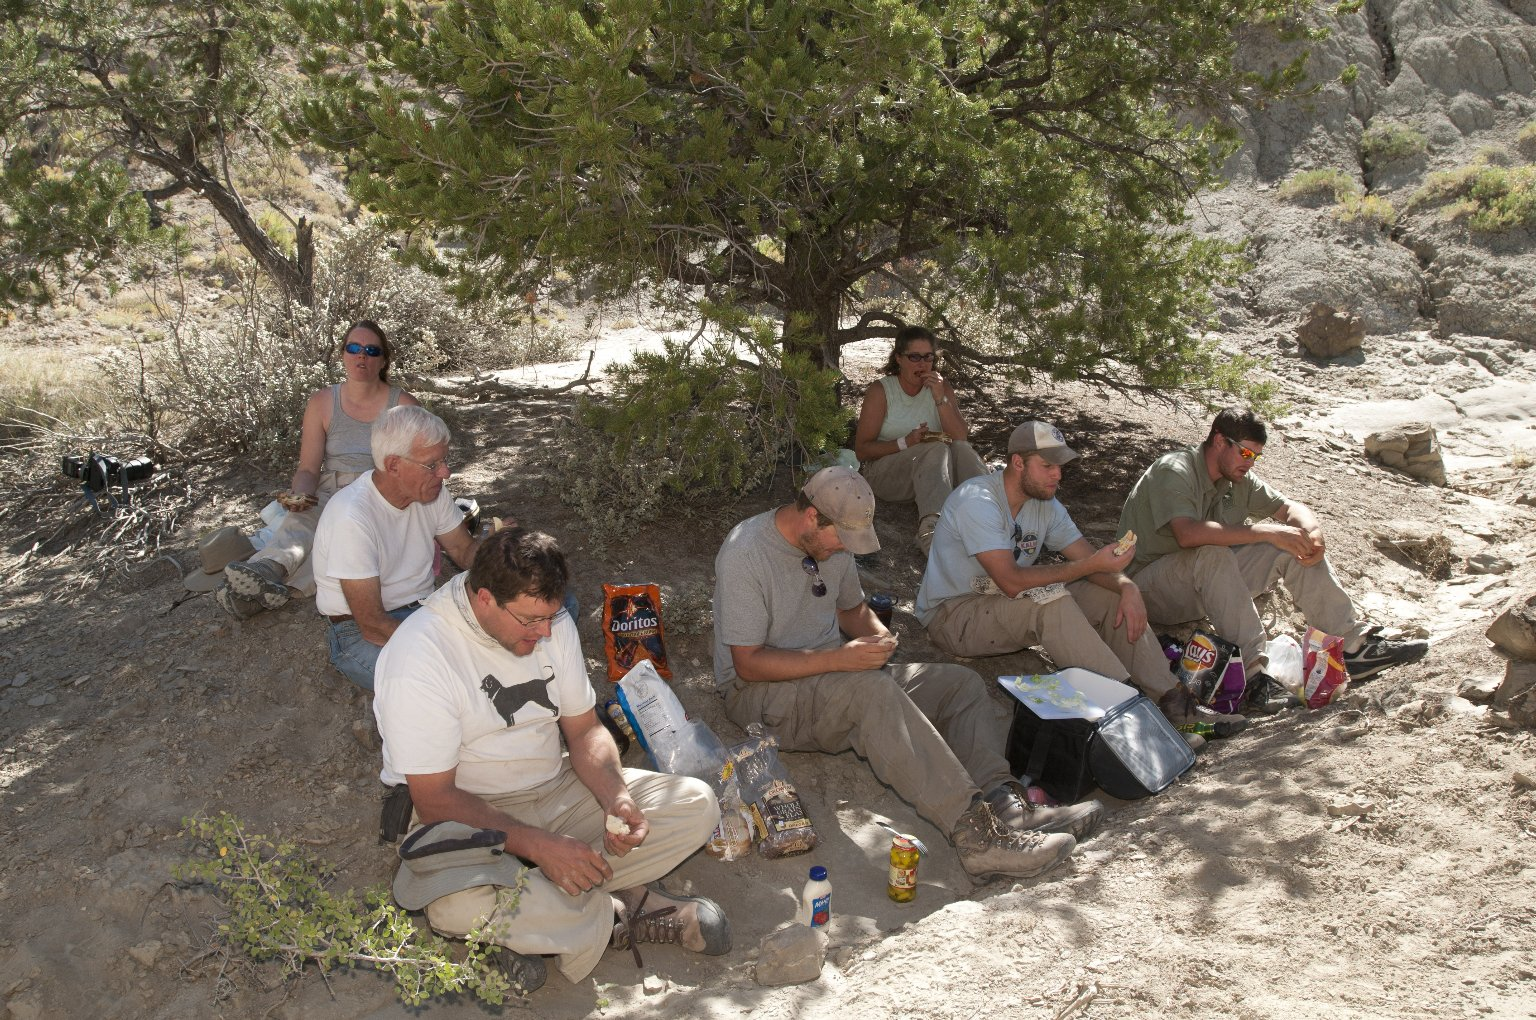 The Excavation Team takes a lunch break in the limited shade on the Kaiparowits Plateau.